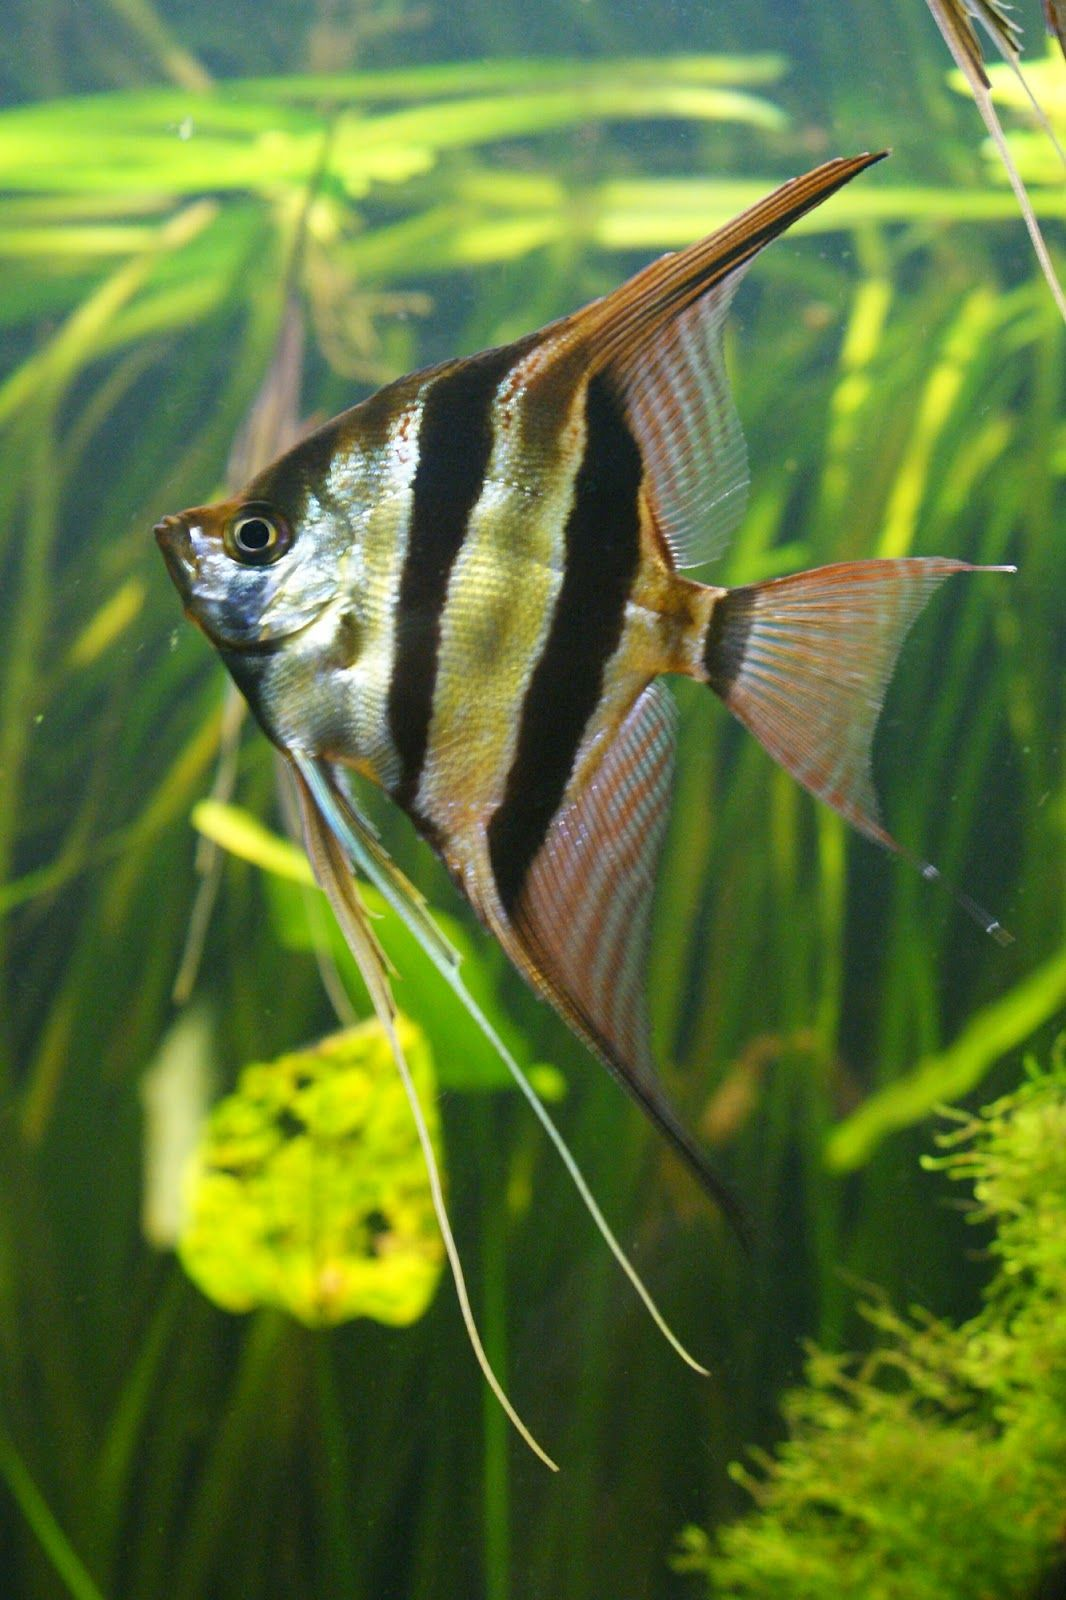 Freshwater aquarium fish angelfish - Adult Majestic Pterophyllum Altum Fish Aquariumsaquarium Fishangelfishbeautiful